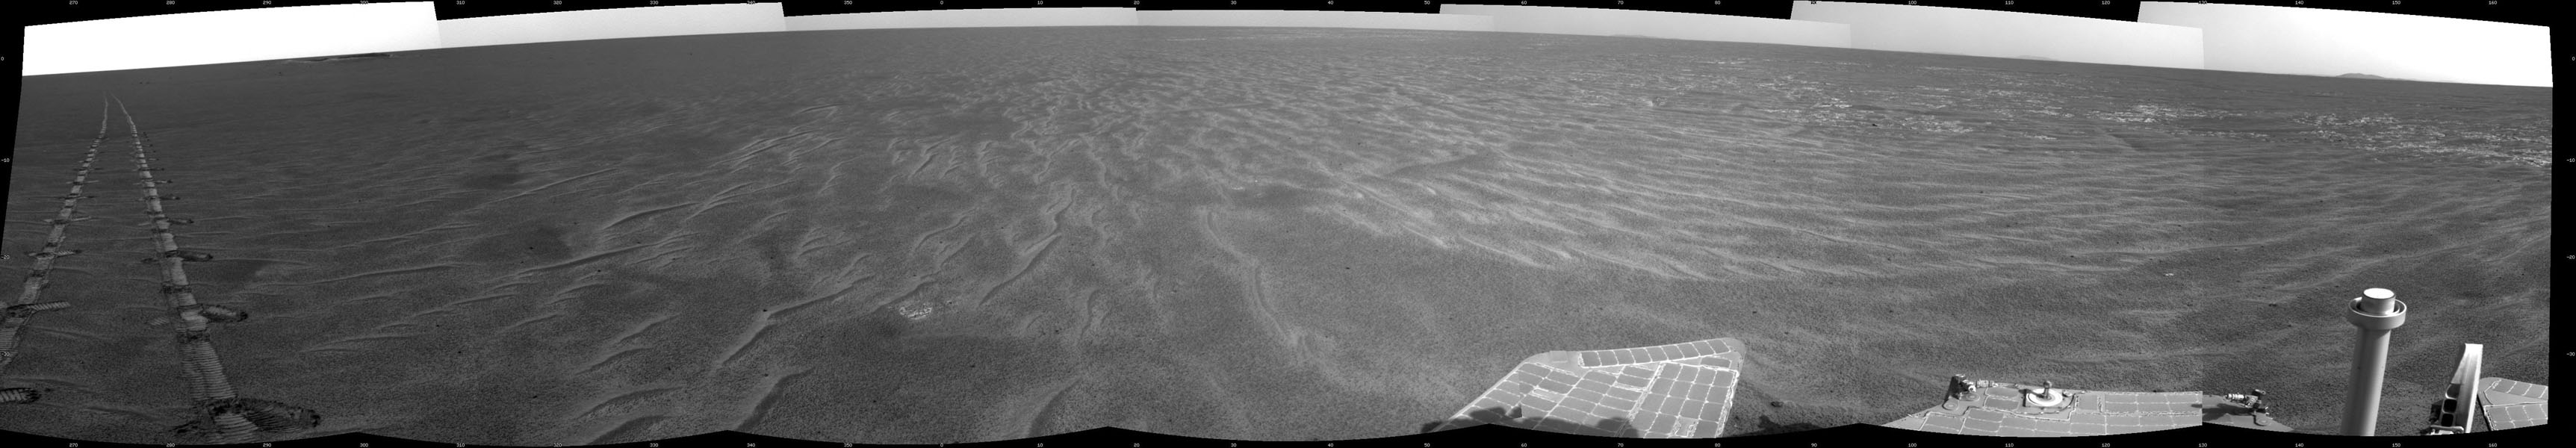 A dance-step pattern is visible in the wheel tracks near the left edge of this scene recorded by NASA's Mars Exploration Rover Opportunity on Mars on April 1, 2011.